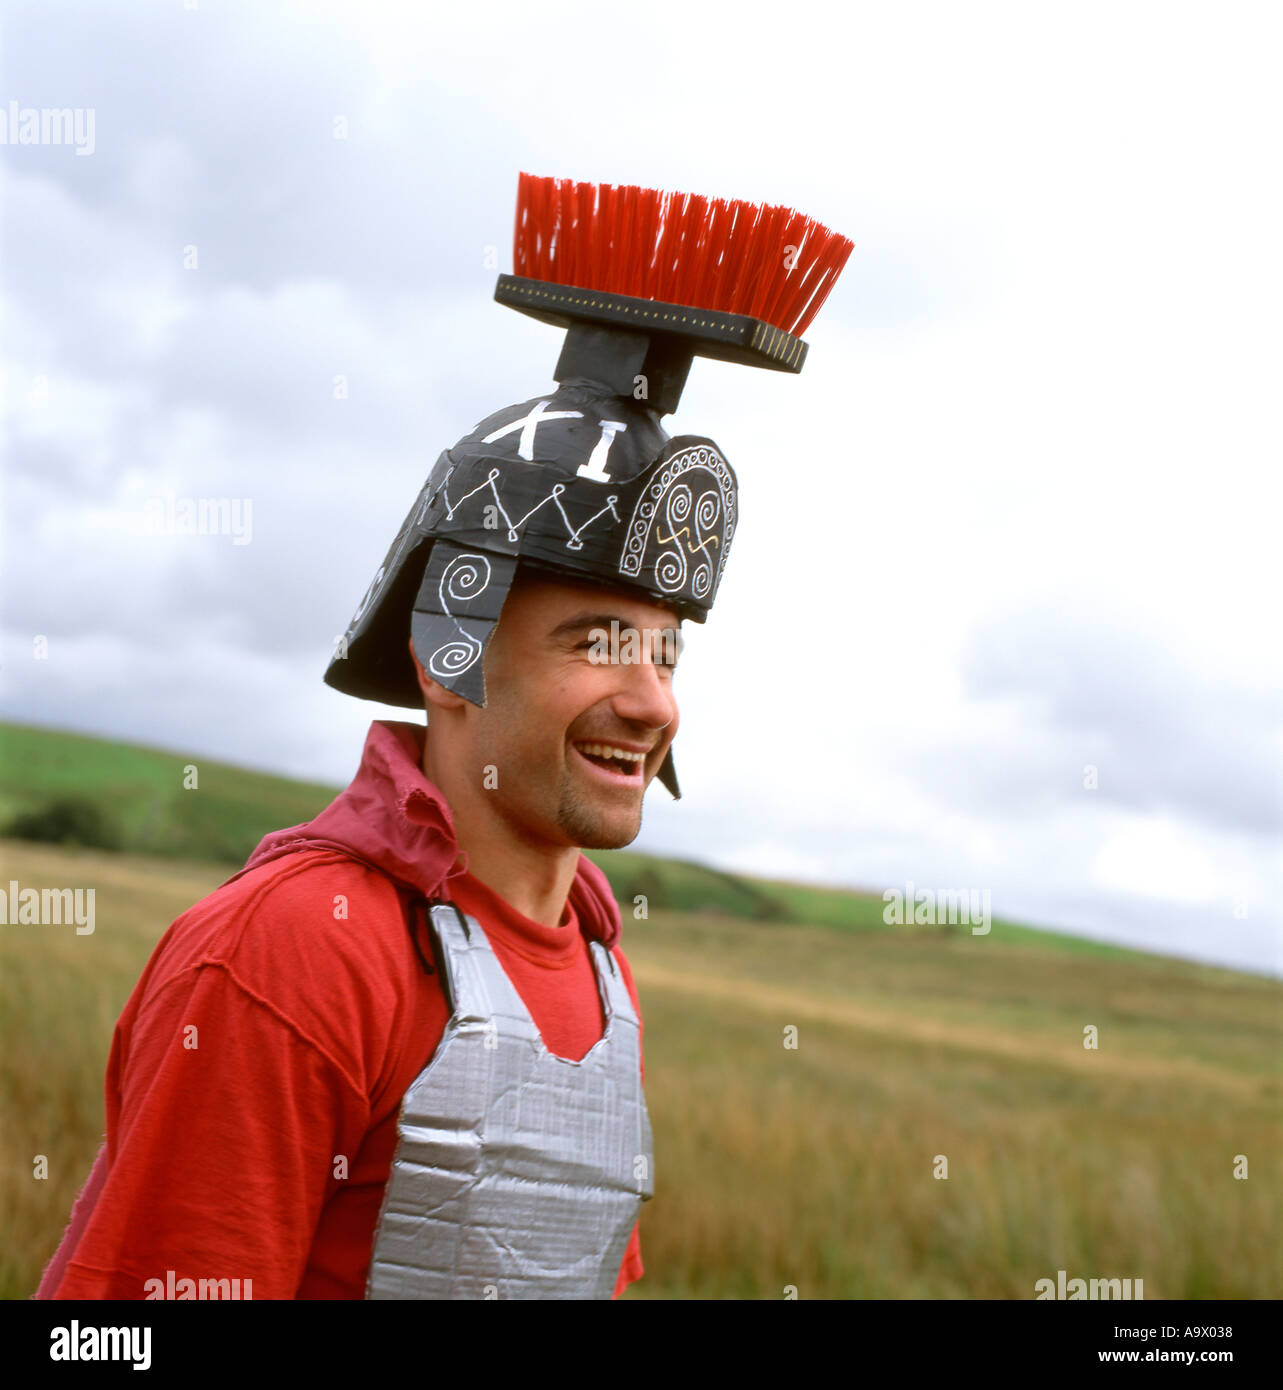 A Roman Centurion soldier in fancy dress with broom helmet at the World Bog Snorkelling Championships in Llanwrtyd Wells Powys Wales UK KATHY DEWITT - Stock Image